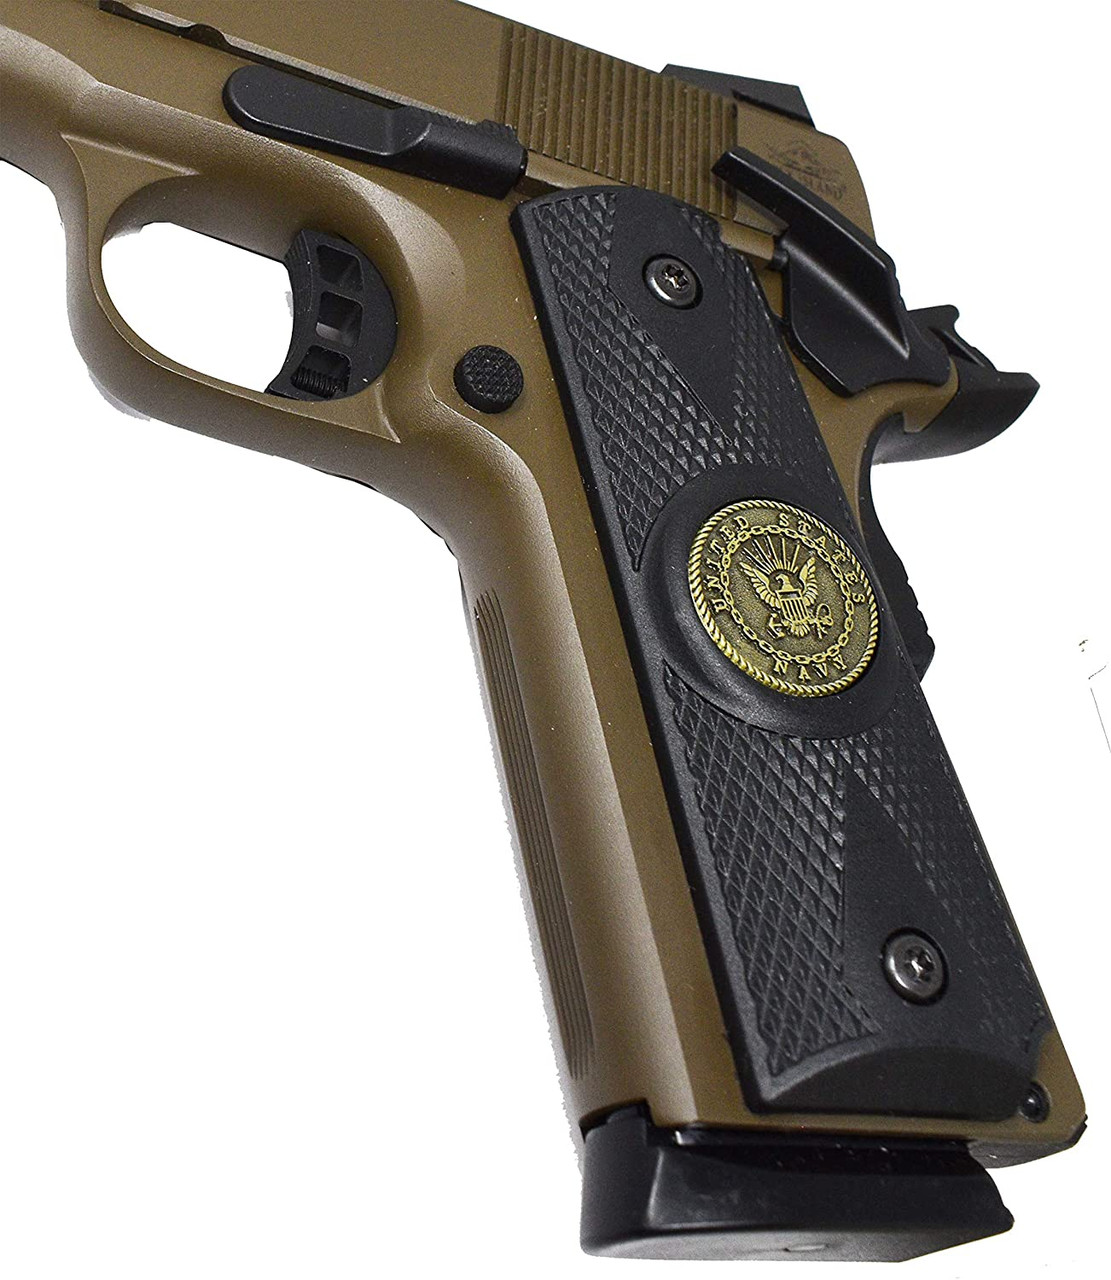 Garrison Grip 1911 Colt A1 Full Size and Clones (Grips Only) with US Navy Pewter Medallion Set in Double Diamond Ebony Black Colored ABS